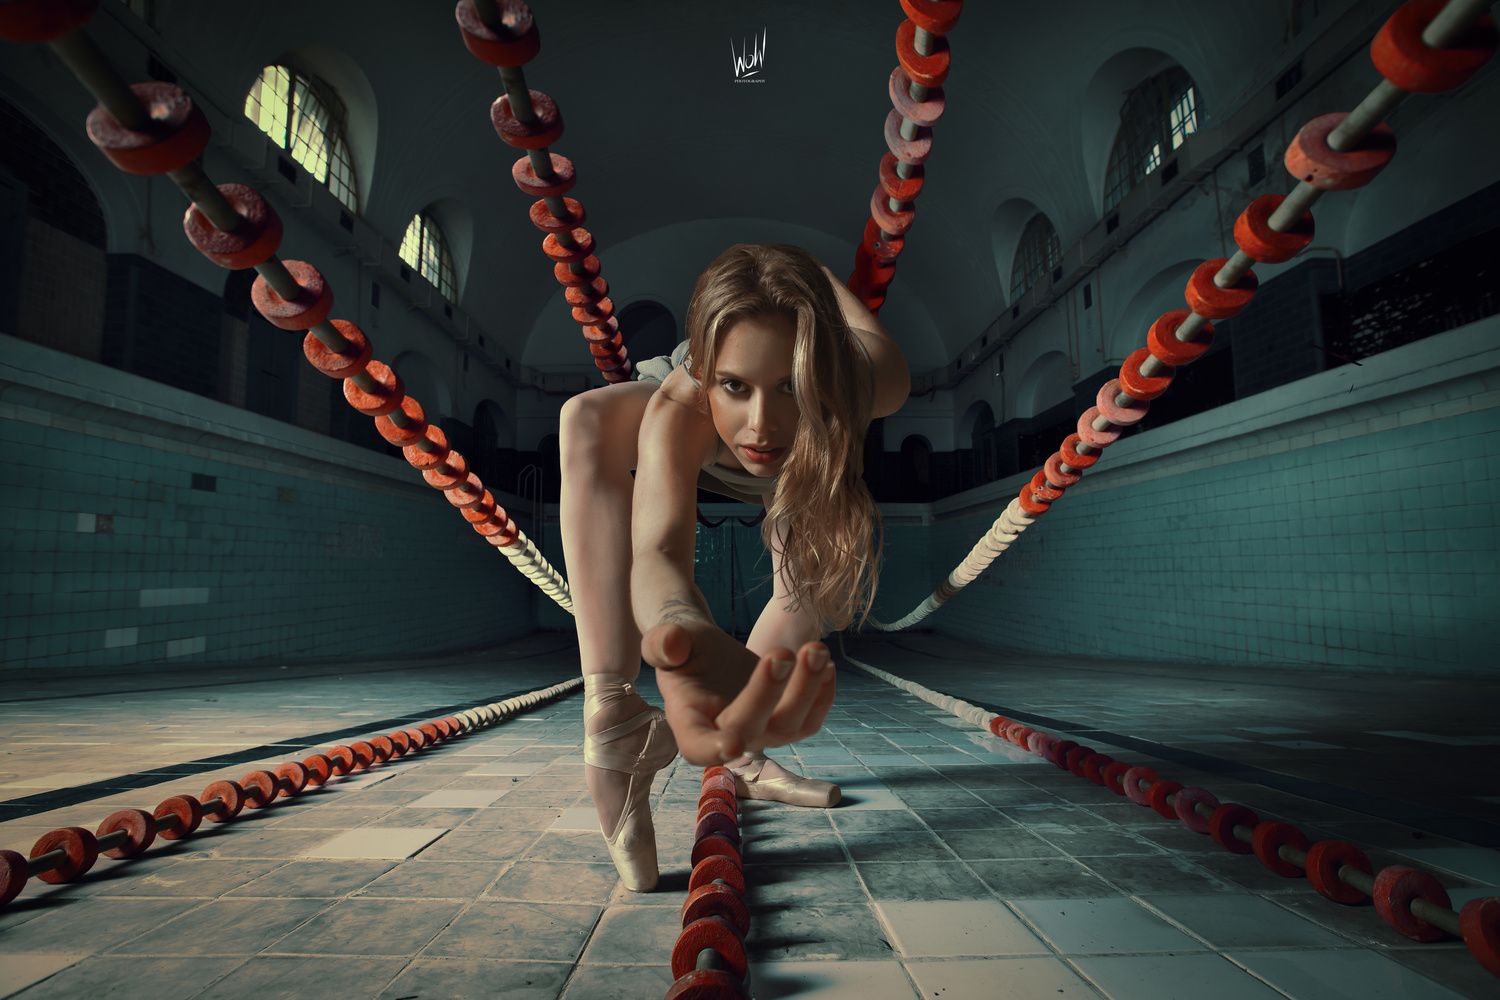 Dive by Thomas Wohl